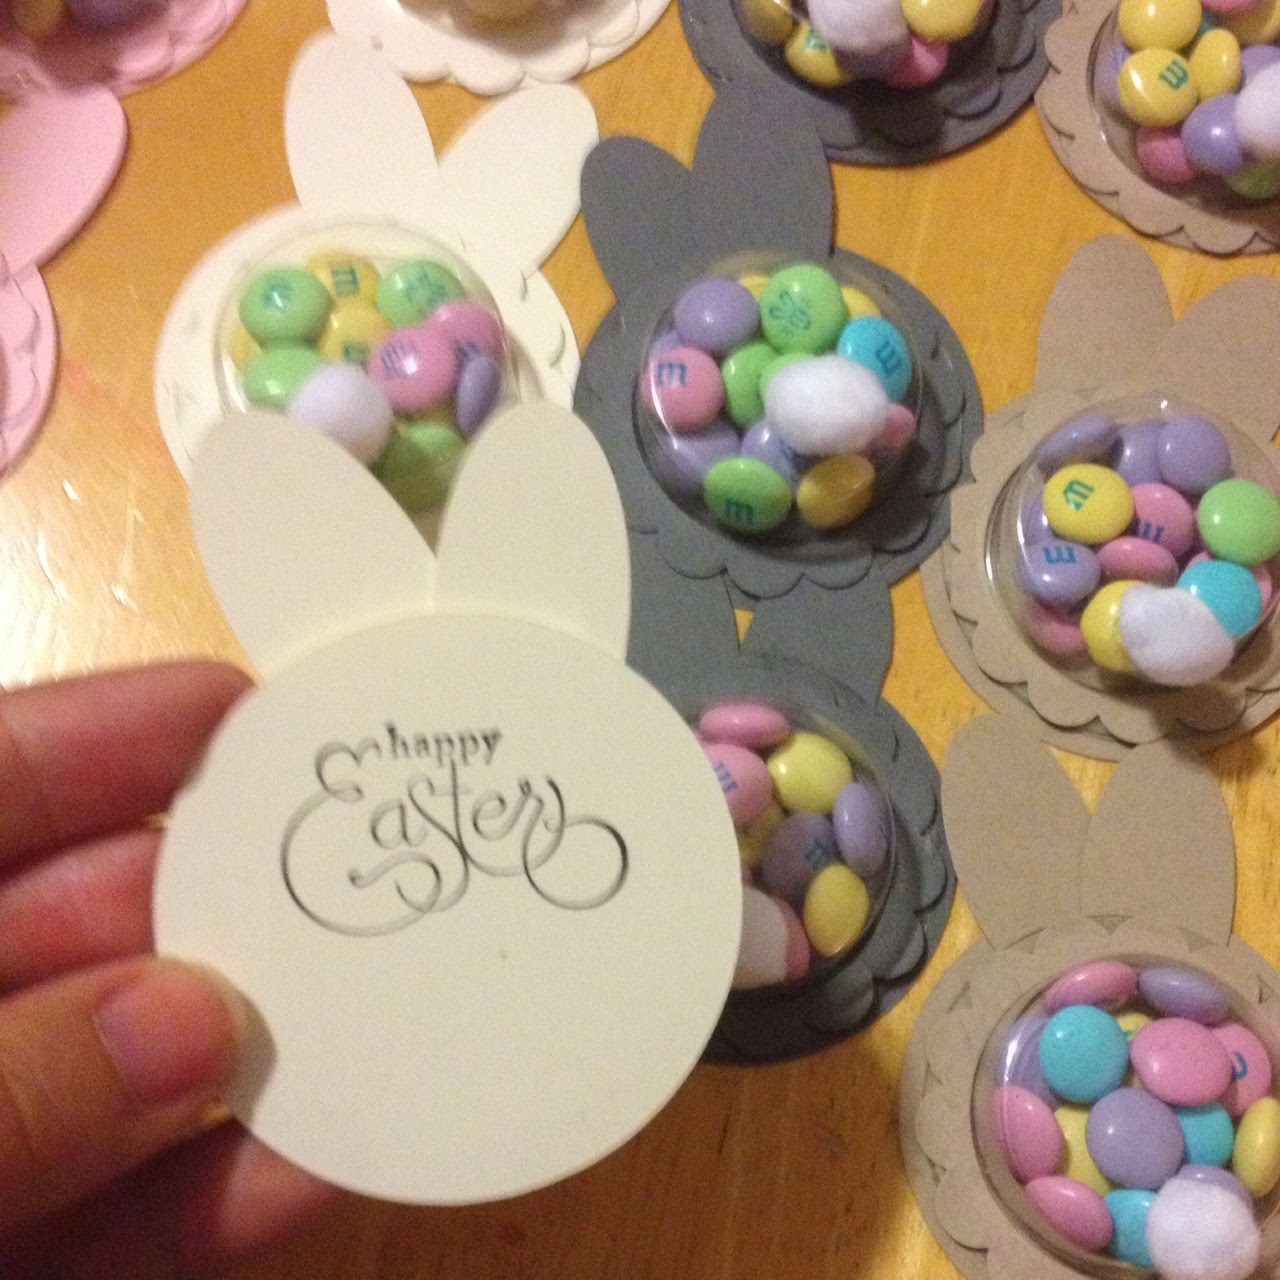 Punch Art Easter Bunnies Stampin Up Sweet Treat Cups Add A Greeting To The Back Maybe Name Or Thank You Great Party Favor Class Idea